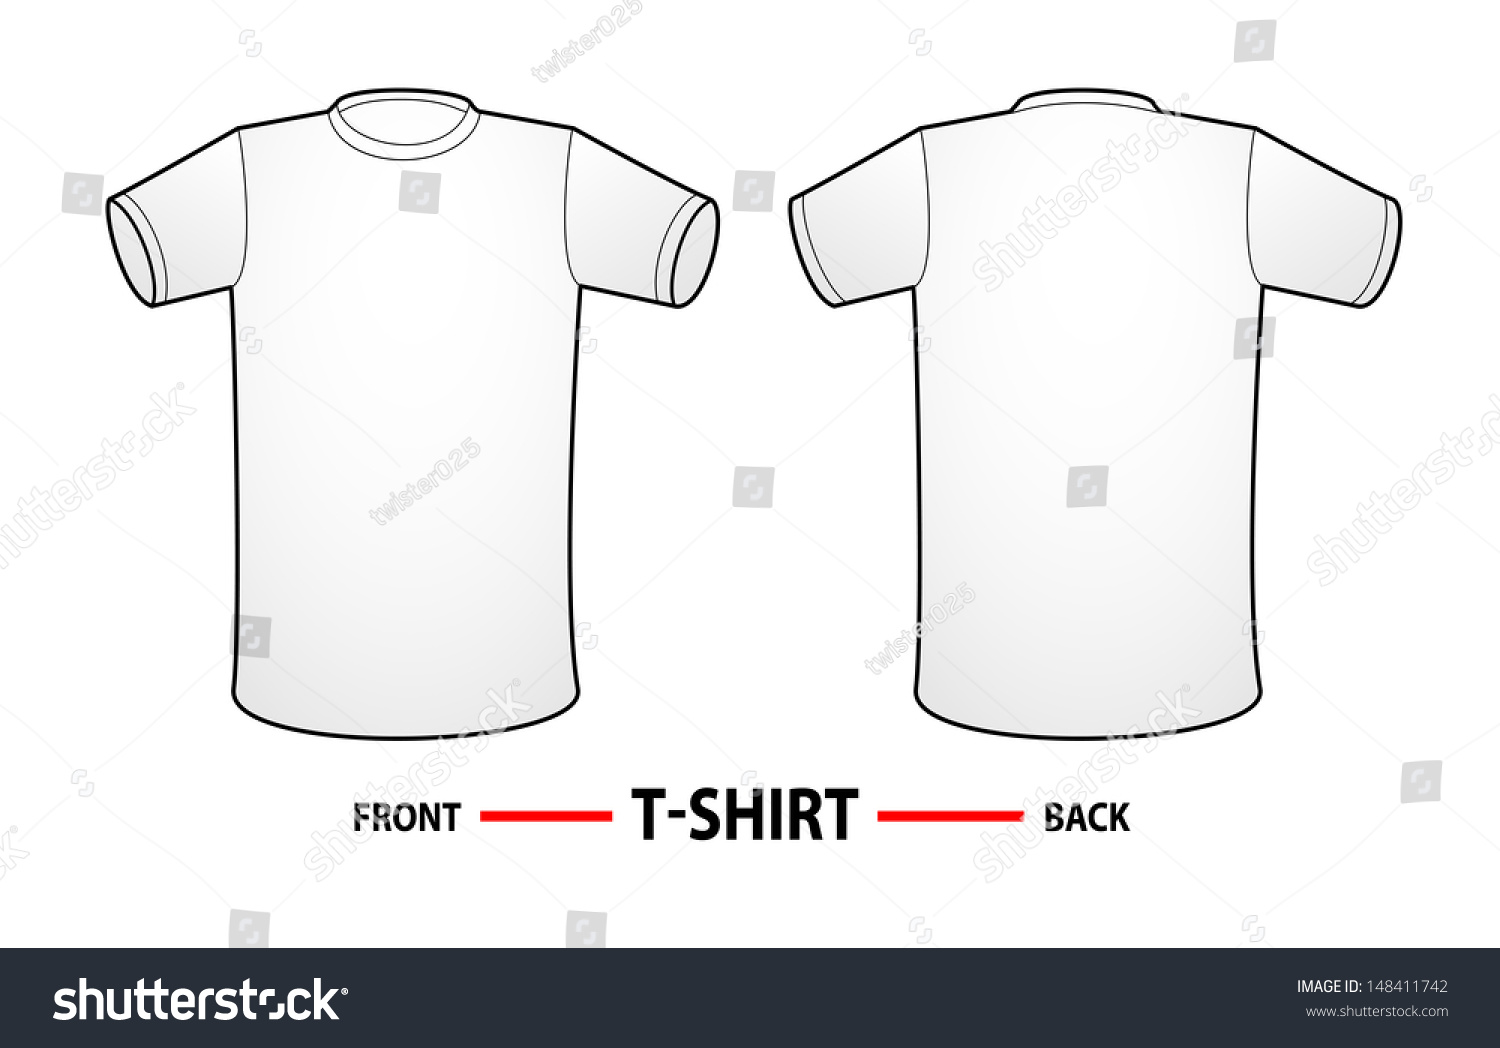 vector t shirt templates white shirt with front side and backside 148411742 shutterstock. Black Bedroom Furniture Sets. Home Design Ideas